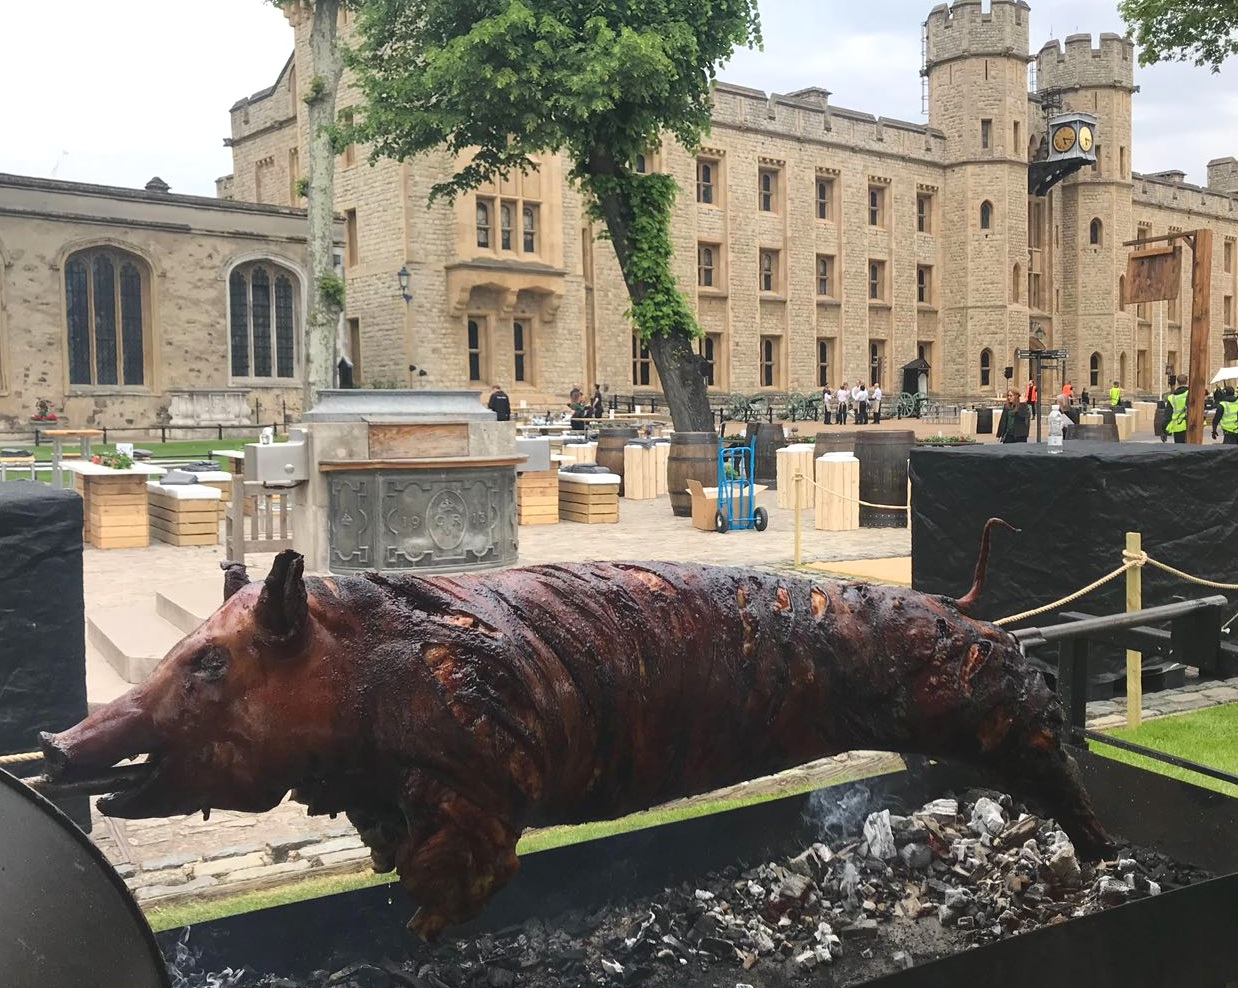 Fabulous BBQ become the first caterer to cook whole hogs within The Tower of London